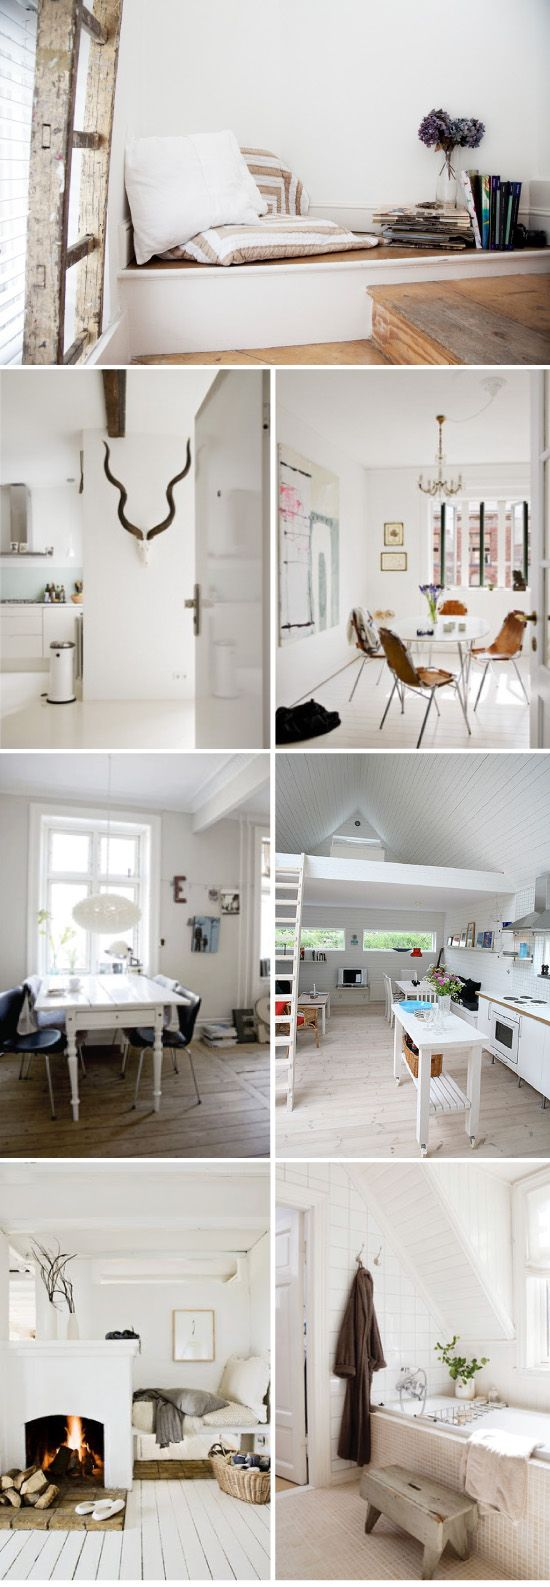 Best images about home sweet home on Pinterest Settees Chairs